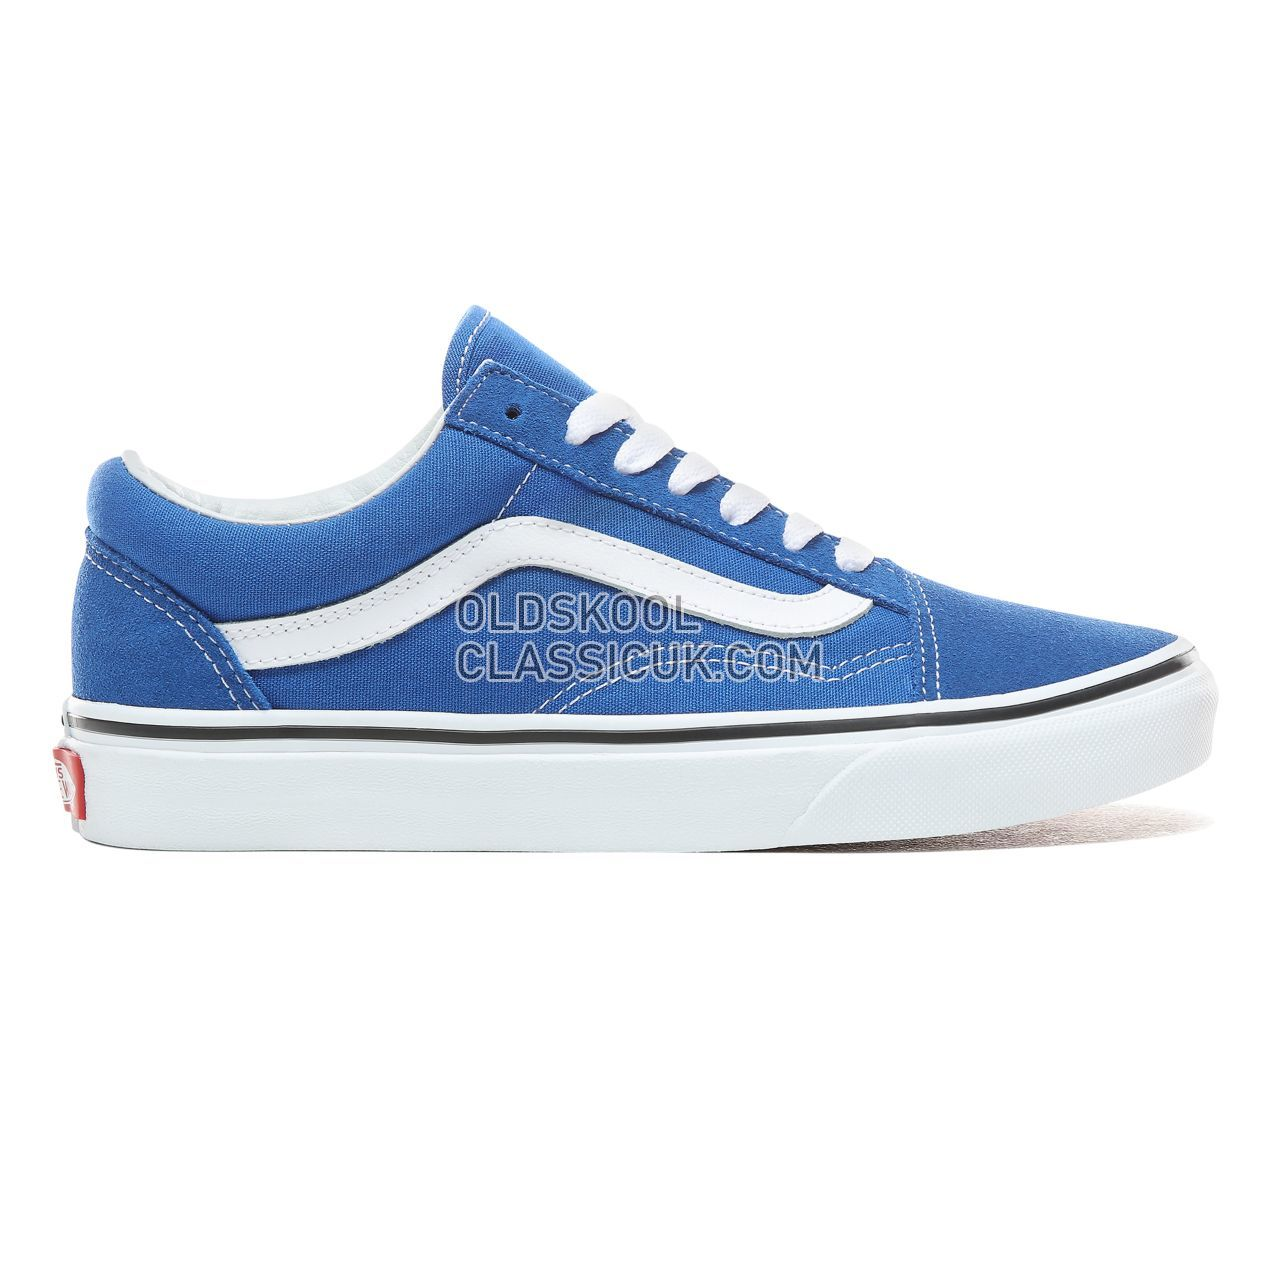 Vans Old Skool Sneakers Womens Lapis Blue/True White VN0A38G1VJI Shoes